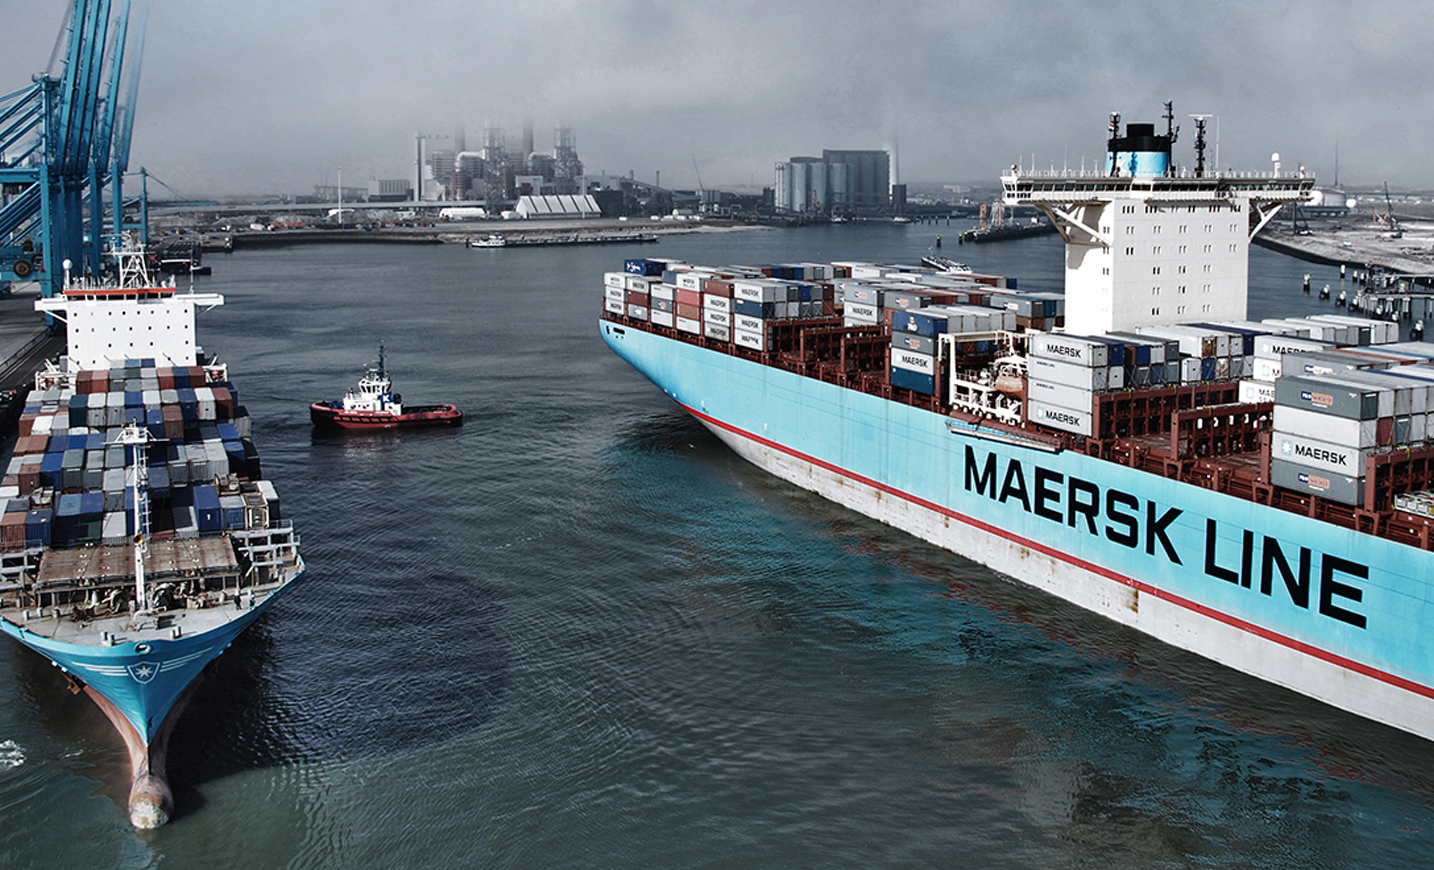 Maersk Line And Hamburg S 252 D Sale And Purchase Agreement